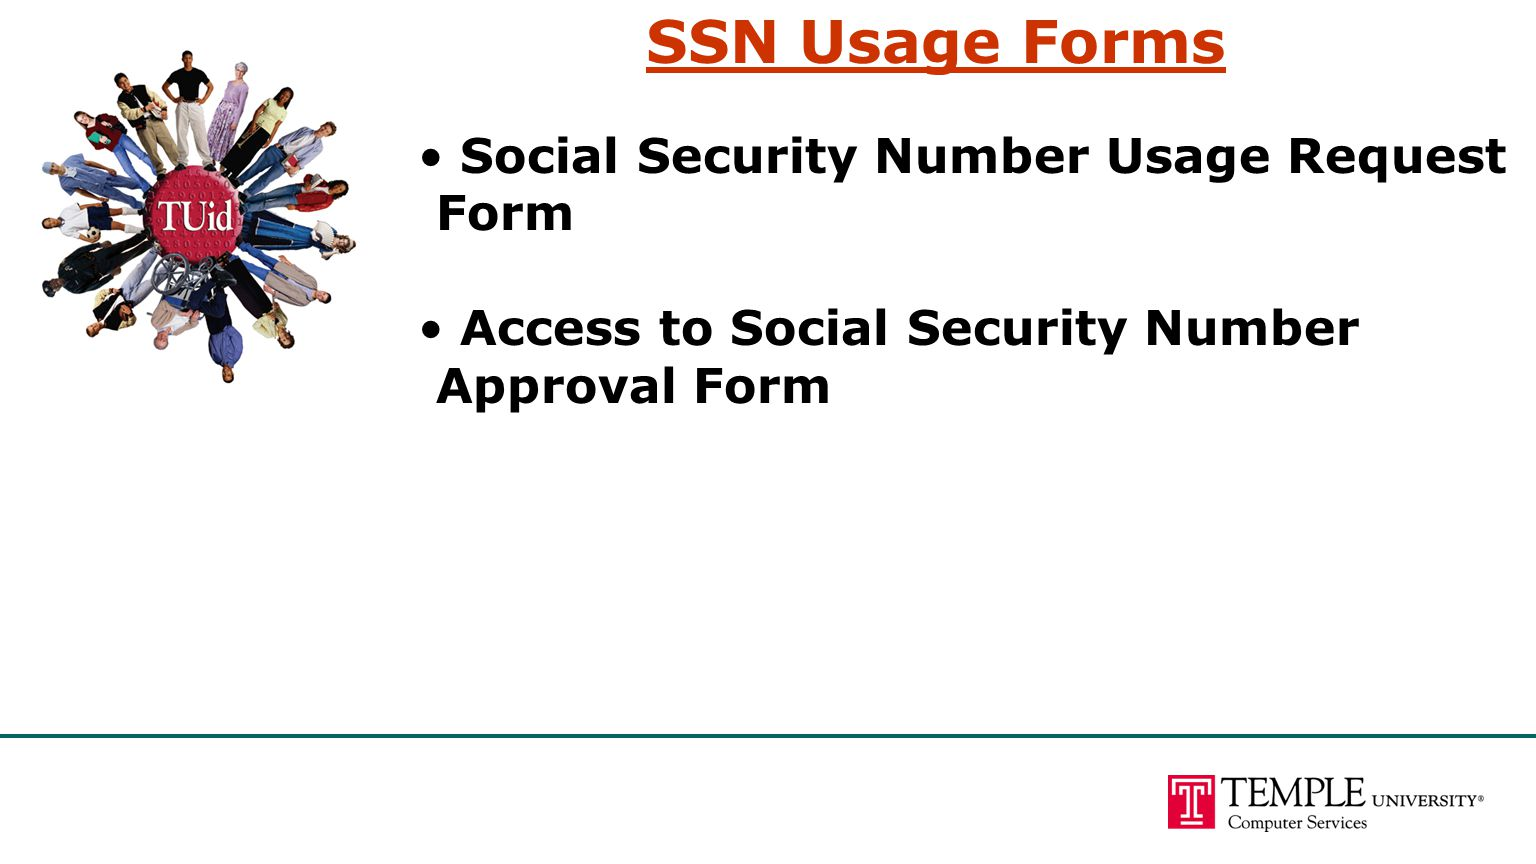 Social Security Number Usage Request Form Access to Social Security Number Approval Form SSN Usage Forms